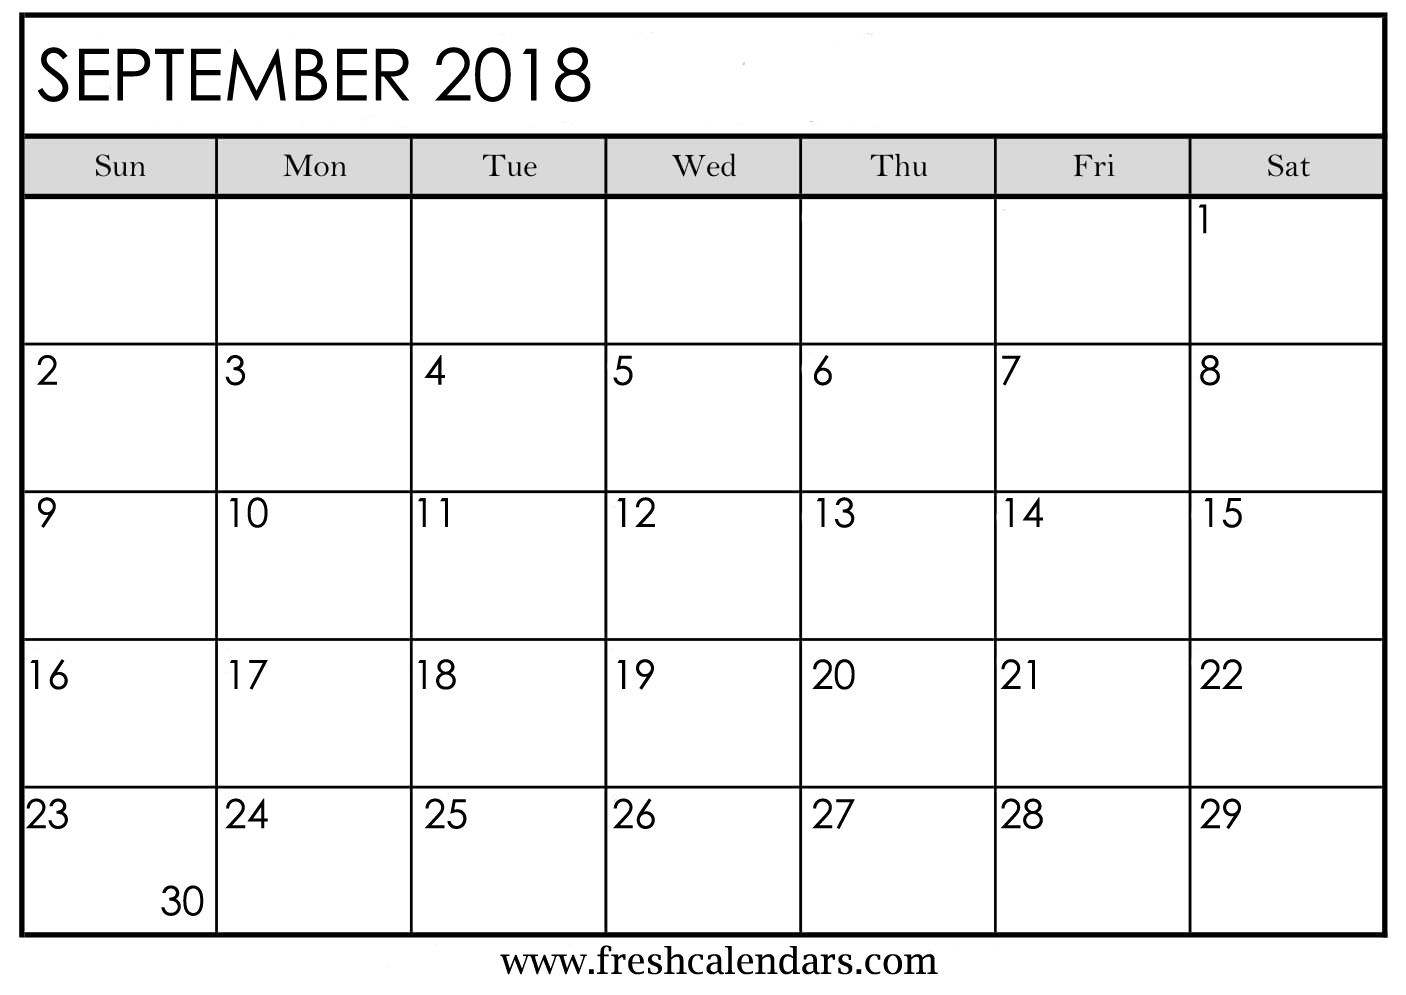 September 2018 Calendar Printable - Fresh Calendars within Print Out Of September Calendar